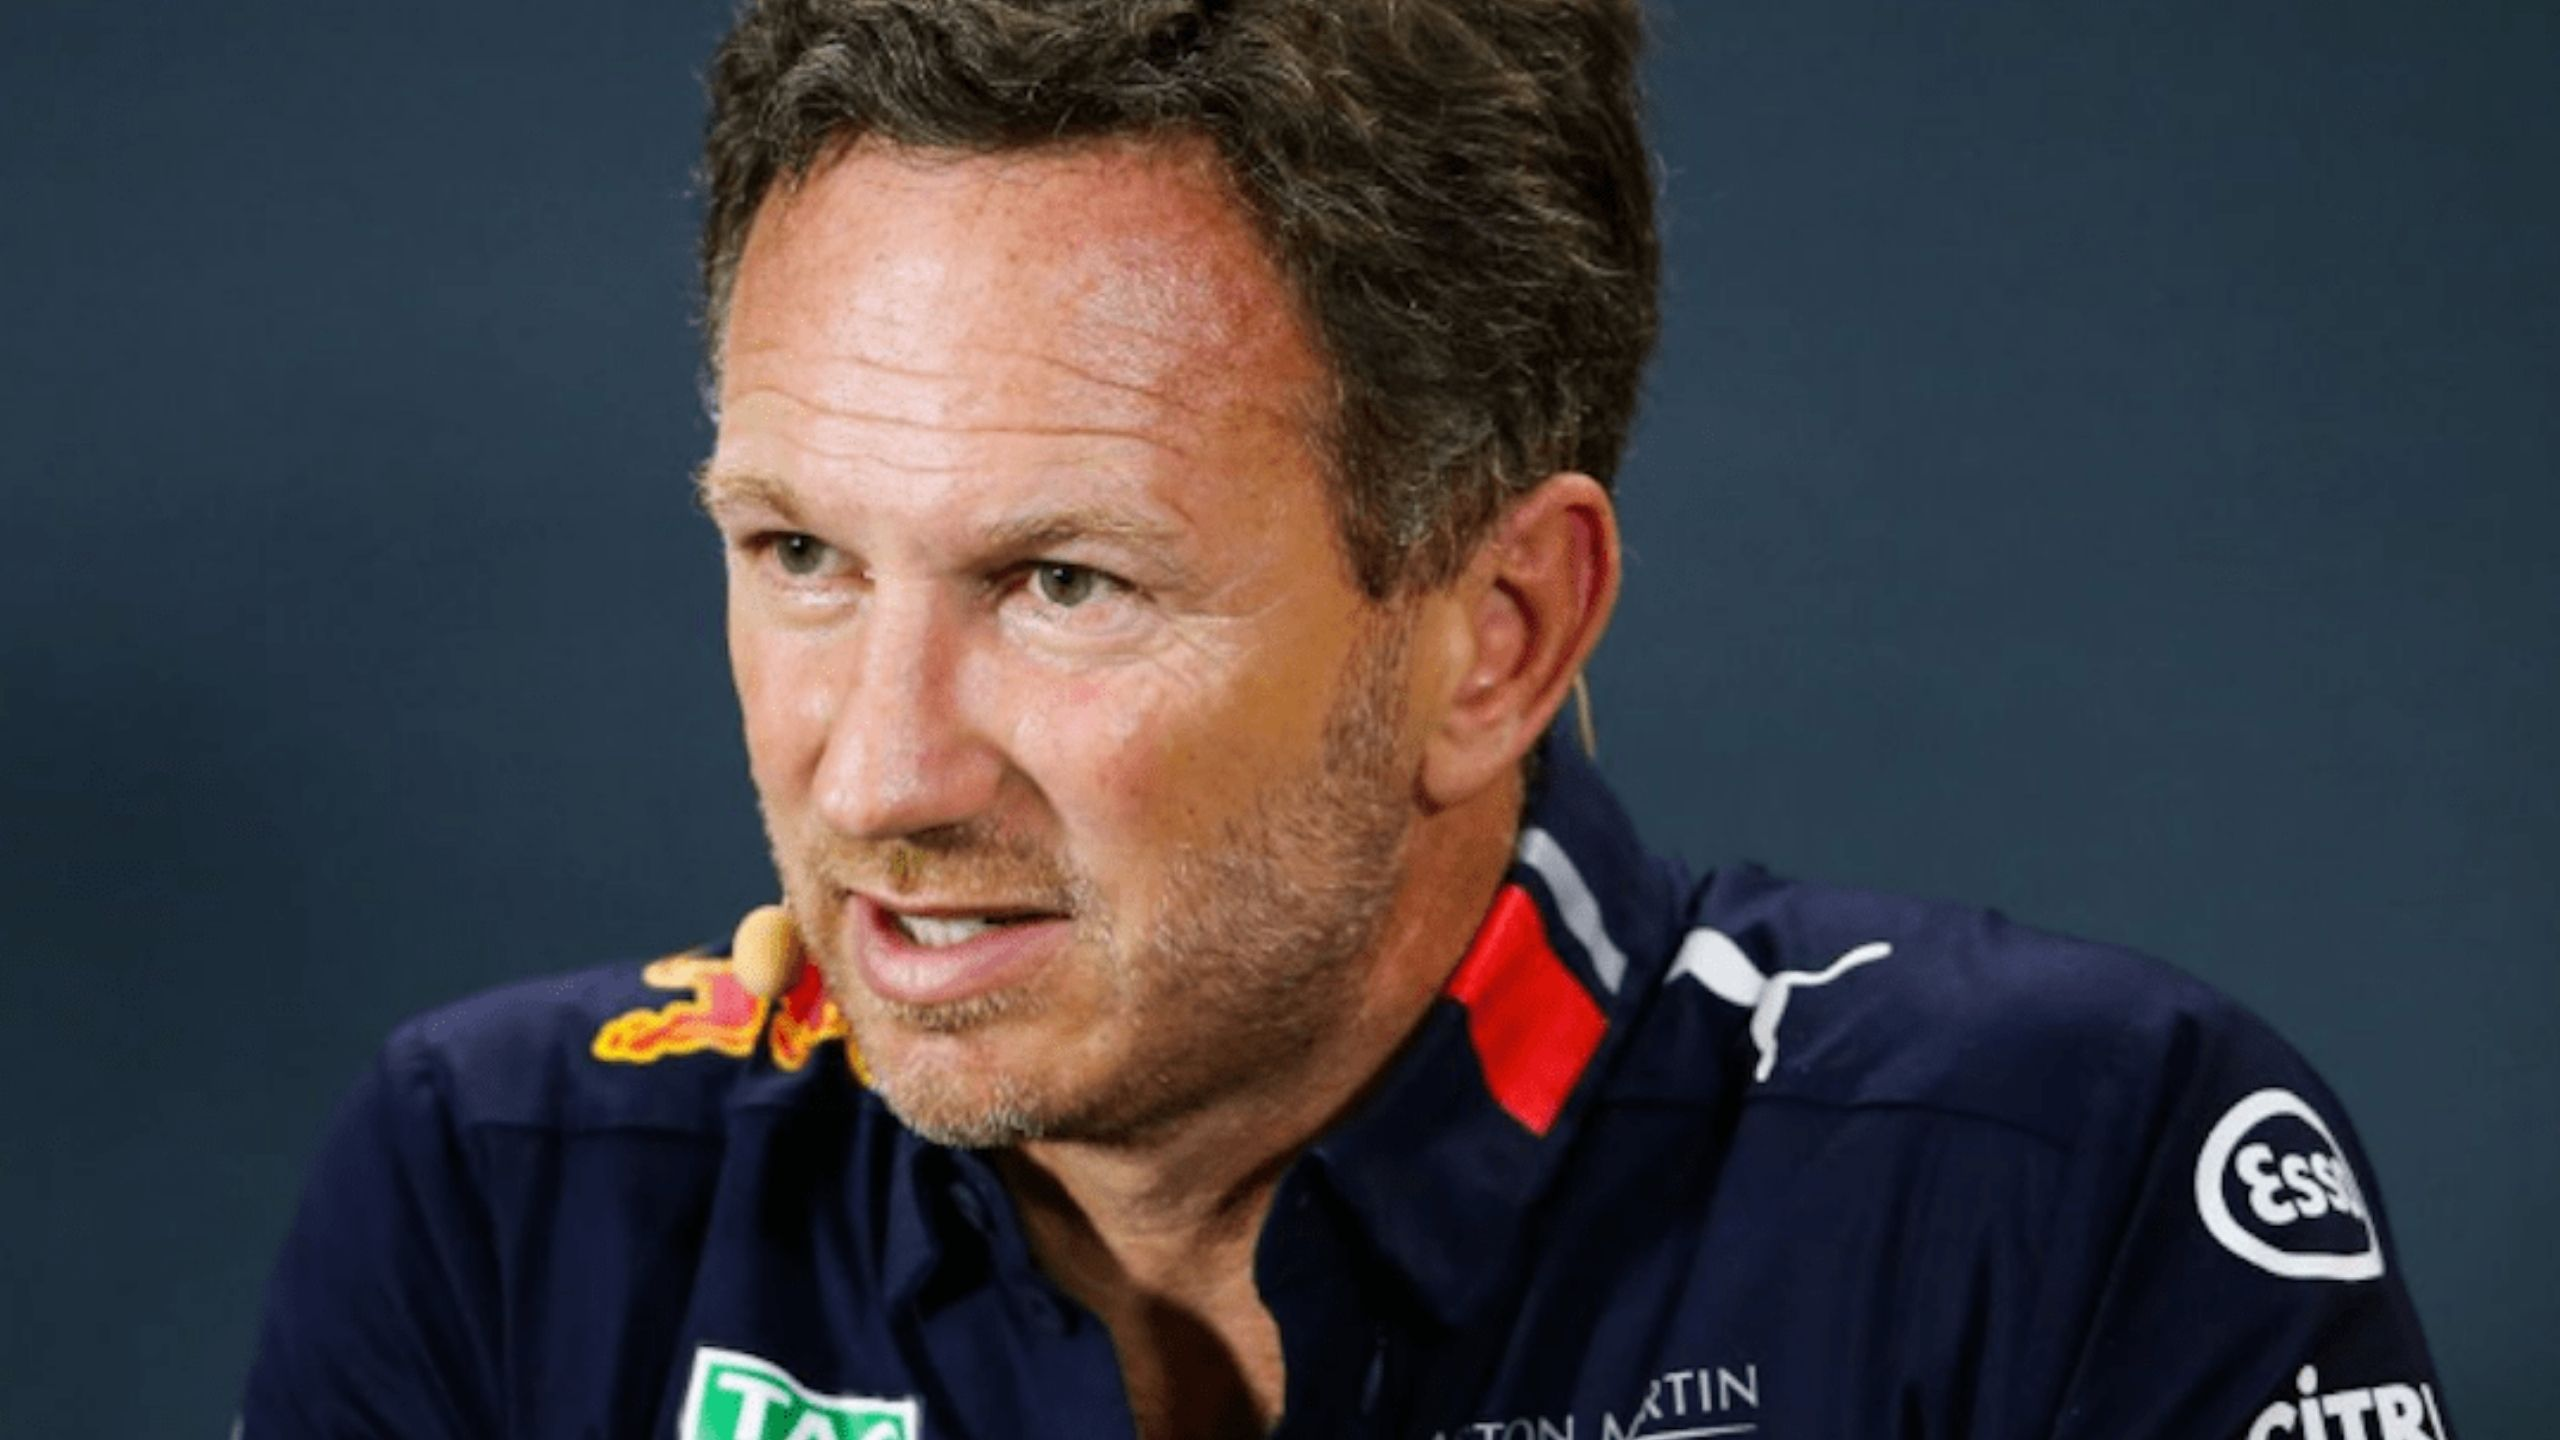 Red Bull Team Principal Christian Horner gives his opinion on whether the energy drinks company can develop its own F1 engine